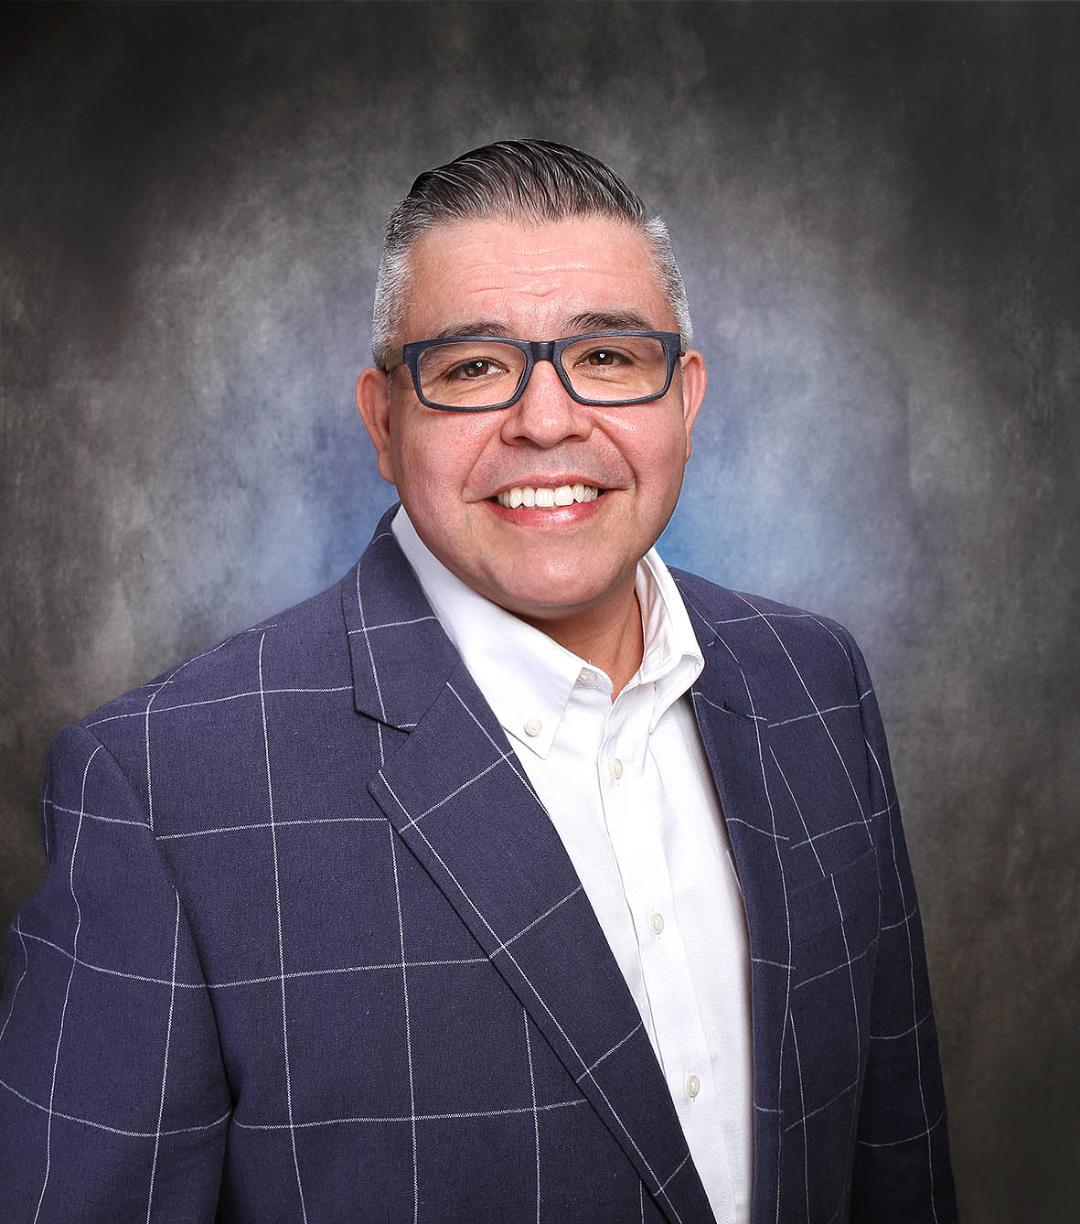 DAVID CHAVEZ PONCE  Your Financial Professional & Insurance Agent